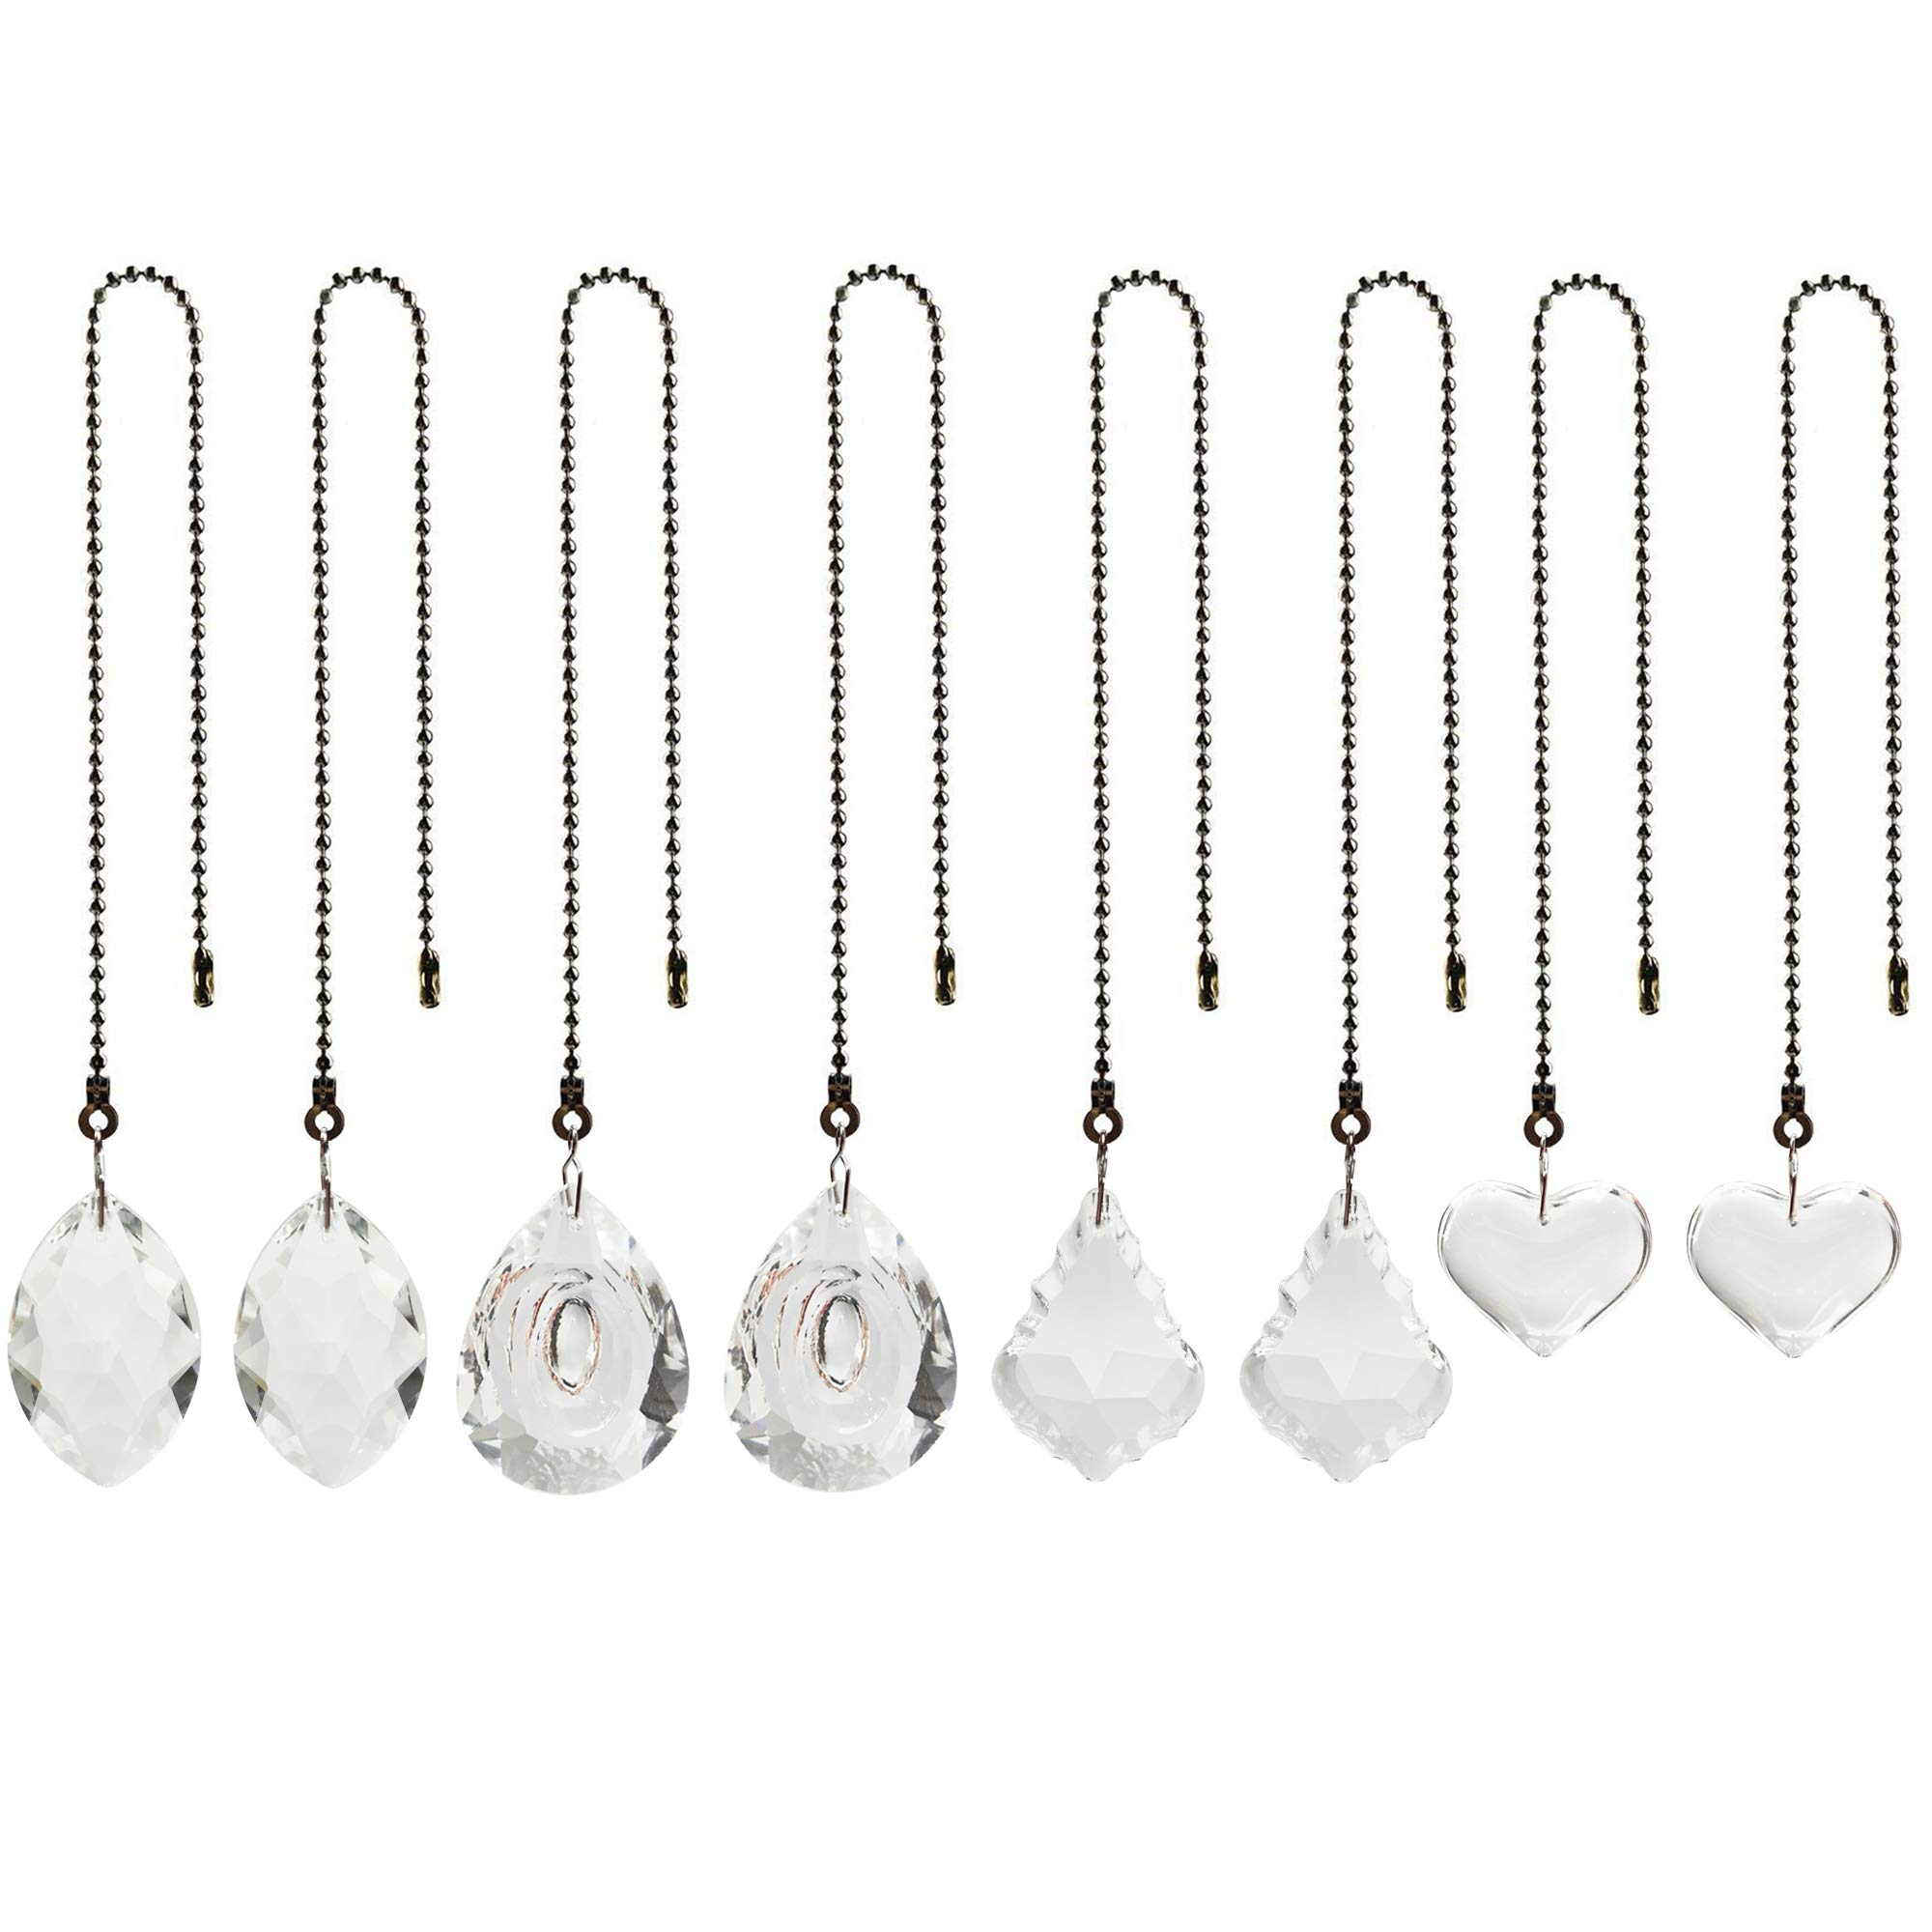 8 Pack 4 Styles Clear Crystal Prisms Charm Pendant Ceiling Fan Light Pull Chain Extender with 30cm Ball Chain Connector by FOWALCOO